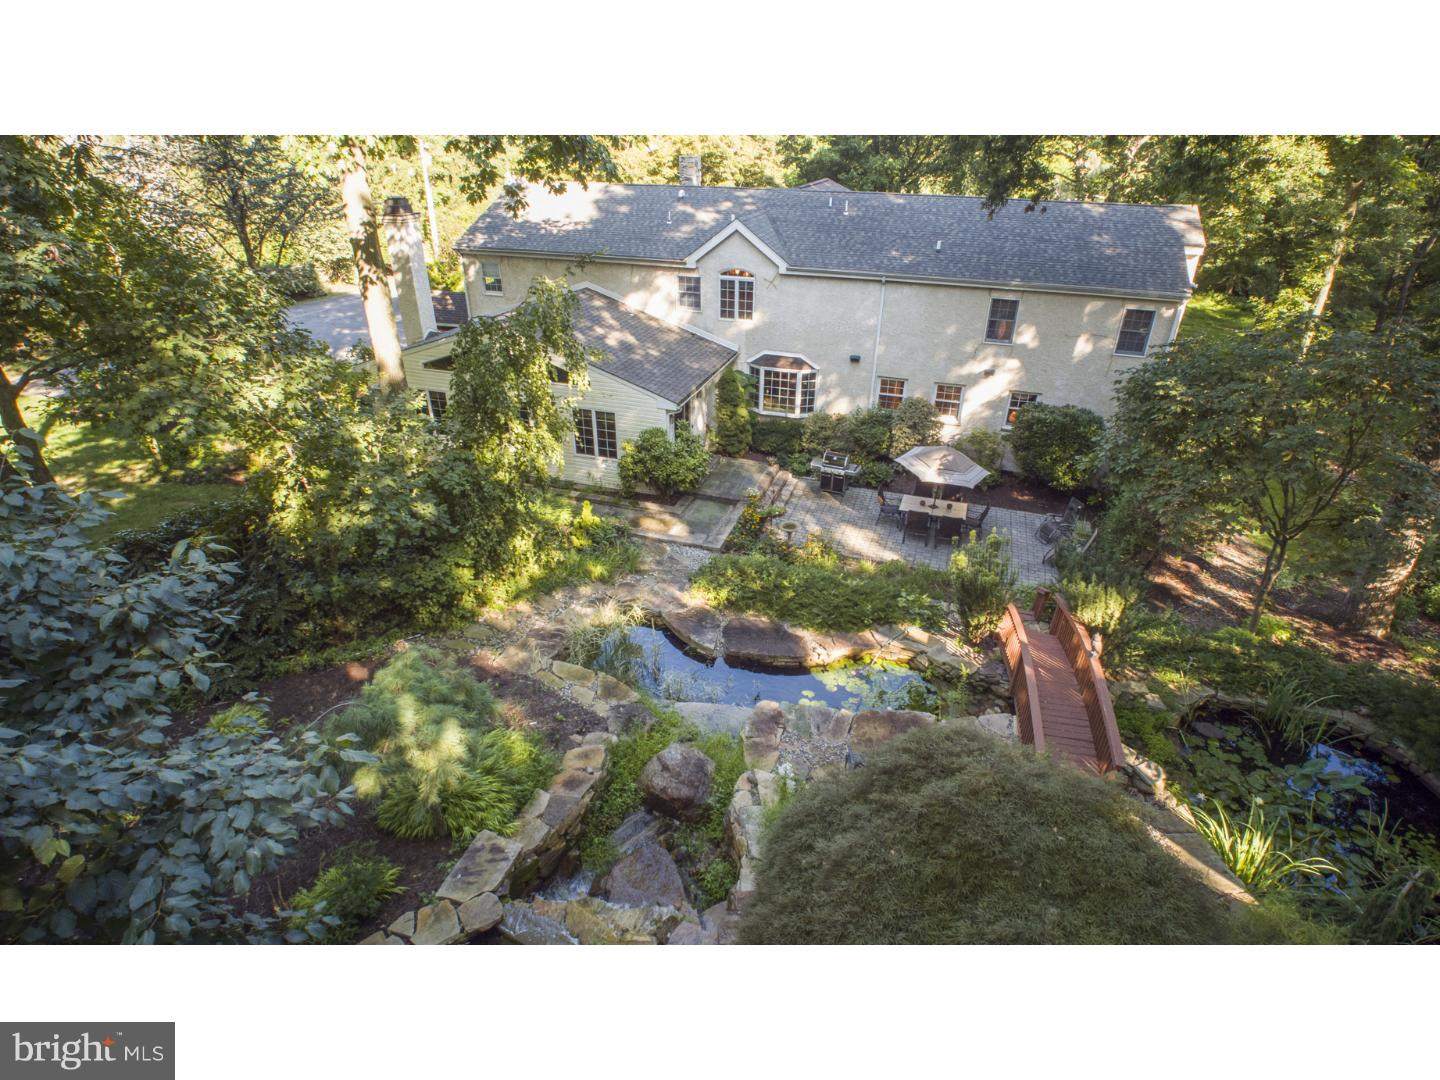 1344 Morstein Road West Chester, PA 19380